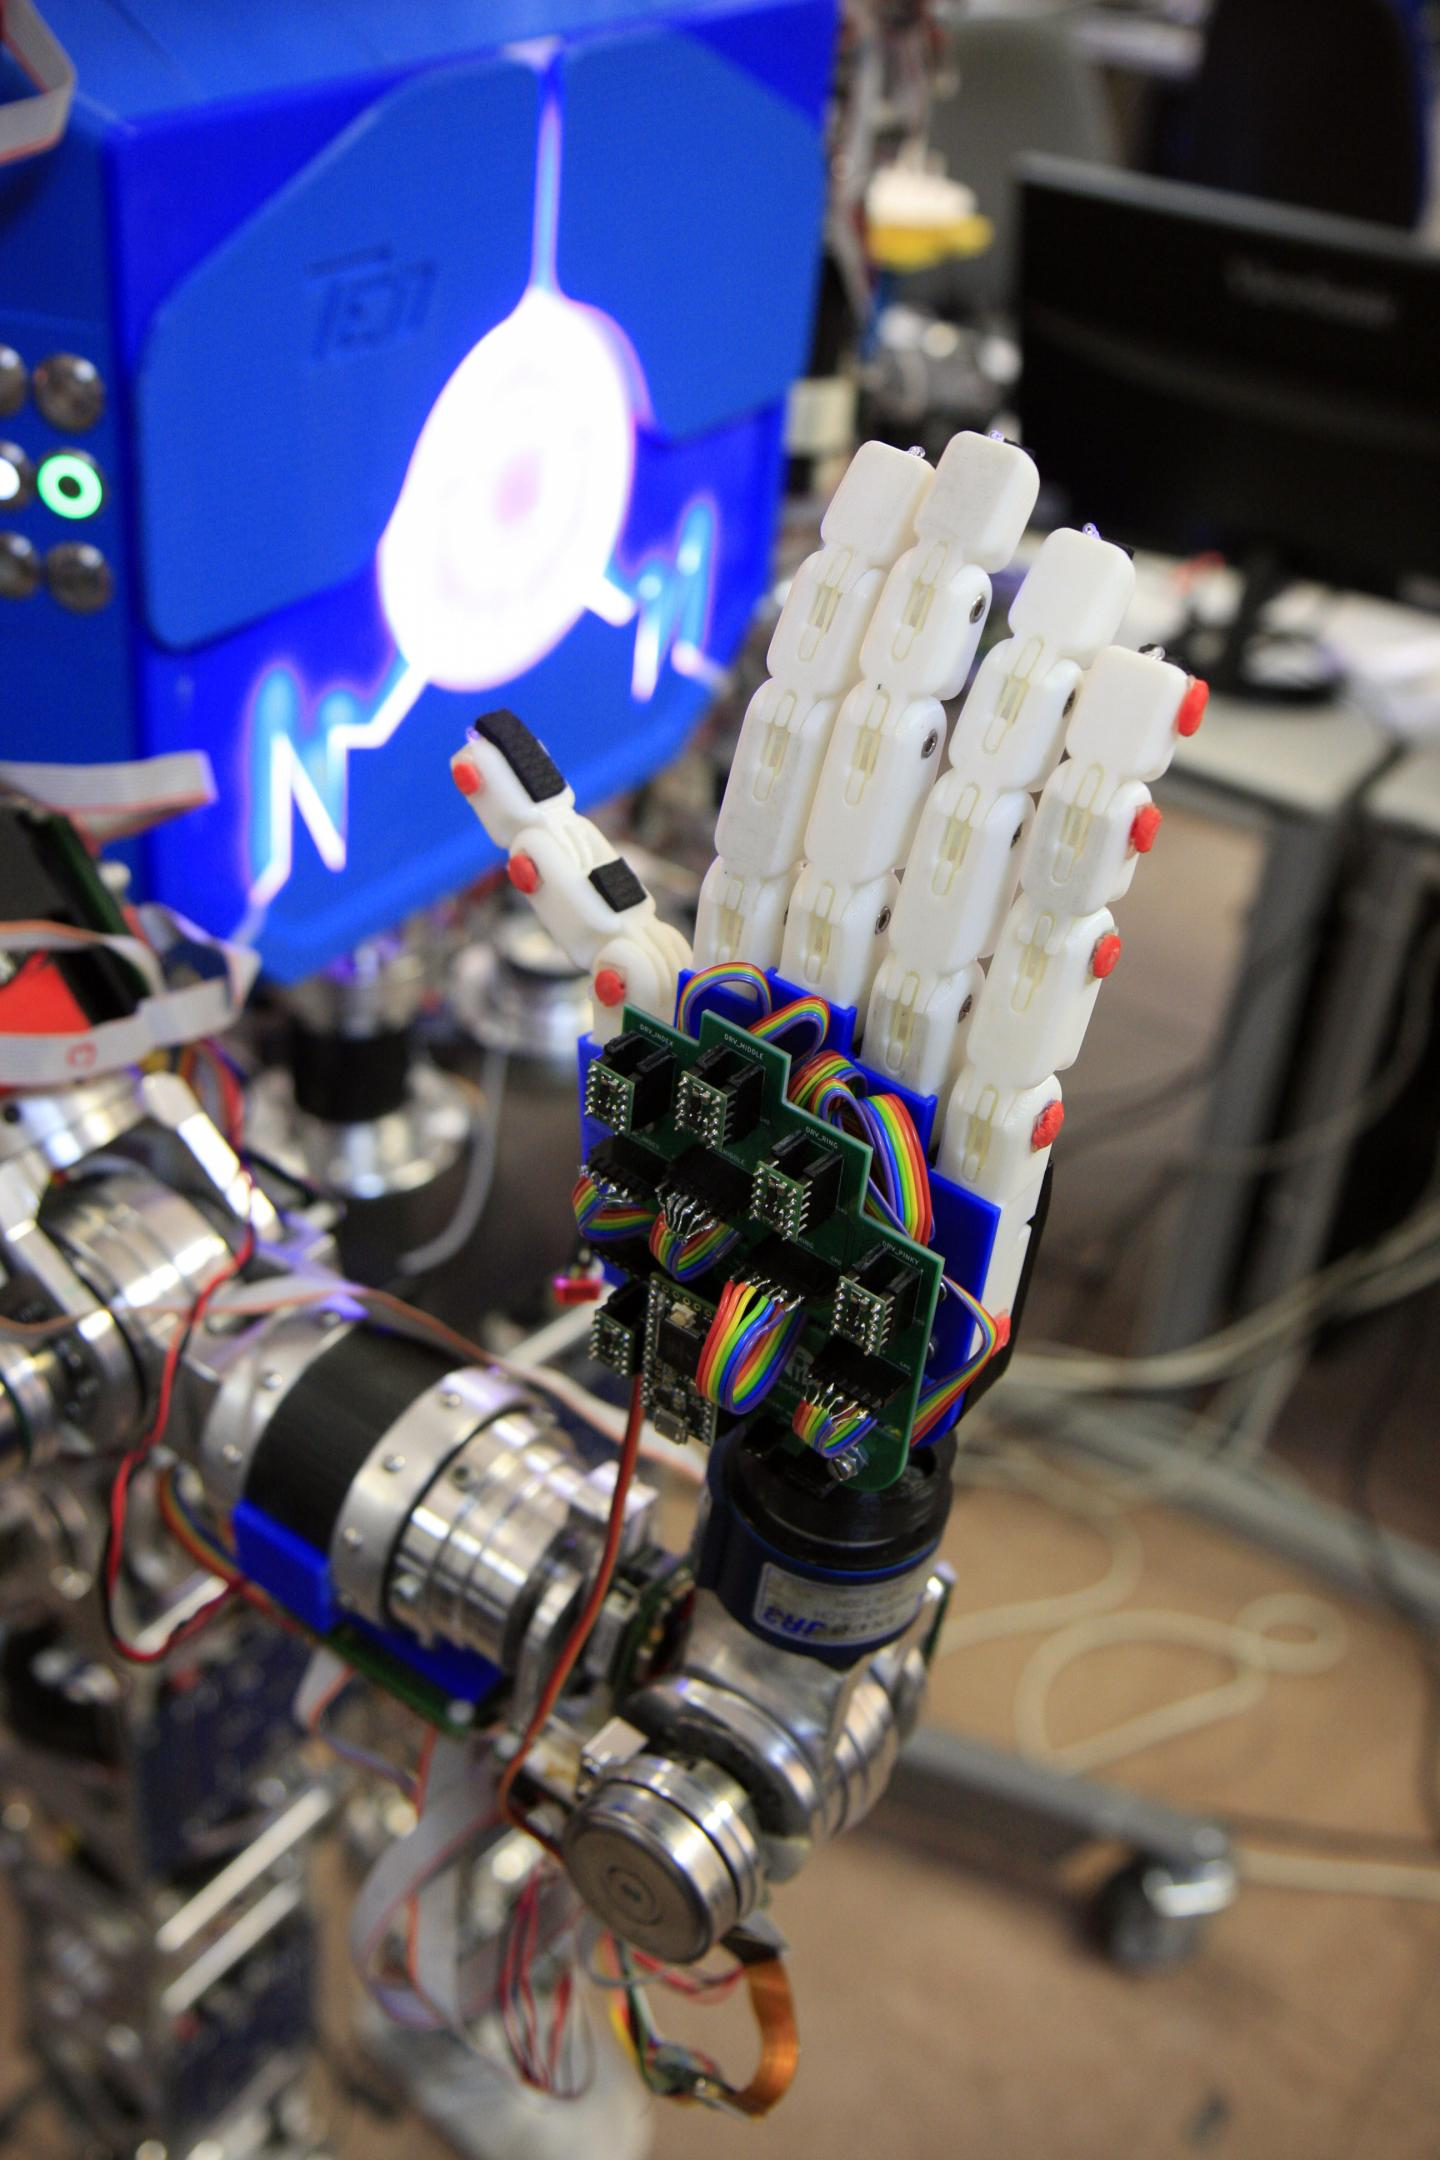 The UC3M Programmes a Humanoid Robot To Communicate In Sign Language